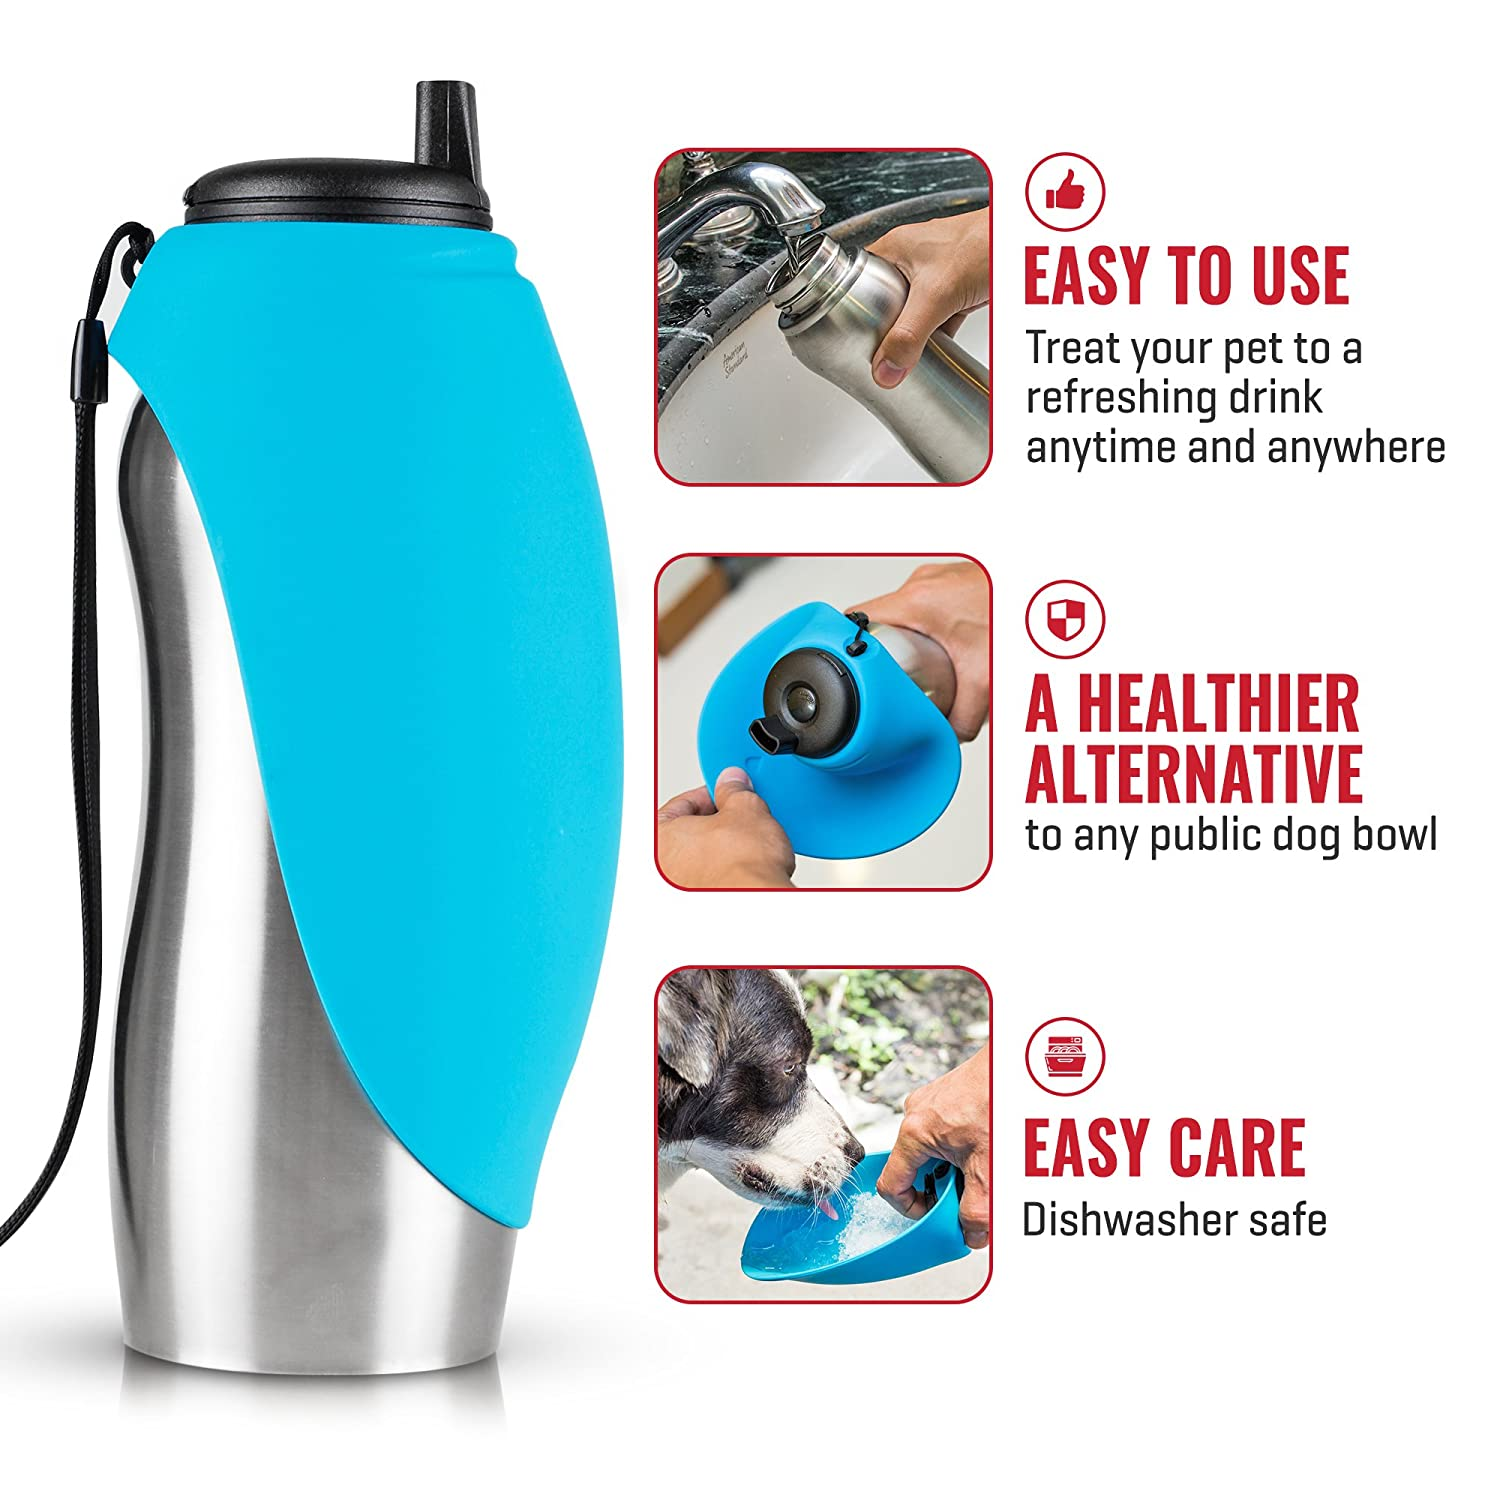 PupFlask Portable Water Bottle For Walking | 24 OZ Stainless Steel | Convenient Dog Travel Water Bottle Keeps Pup Hydrated - bottle-with-bowl